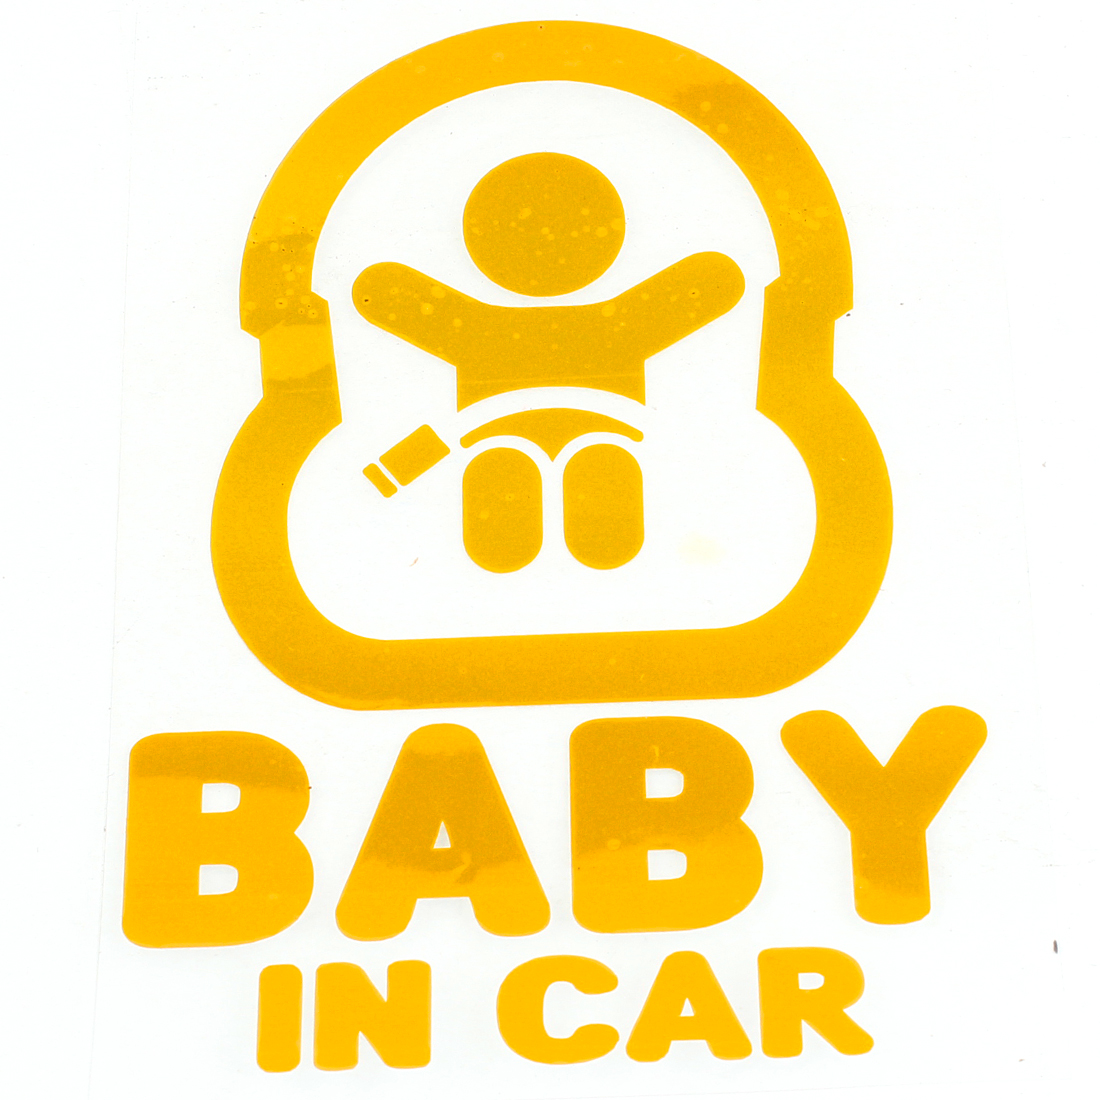 Baby in Car Printed Safety Sign Self Adhesive Decal Sticker Yellow for Car